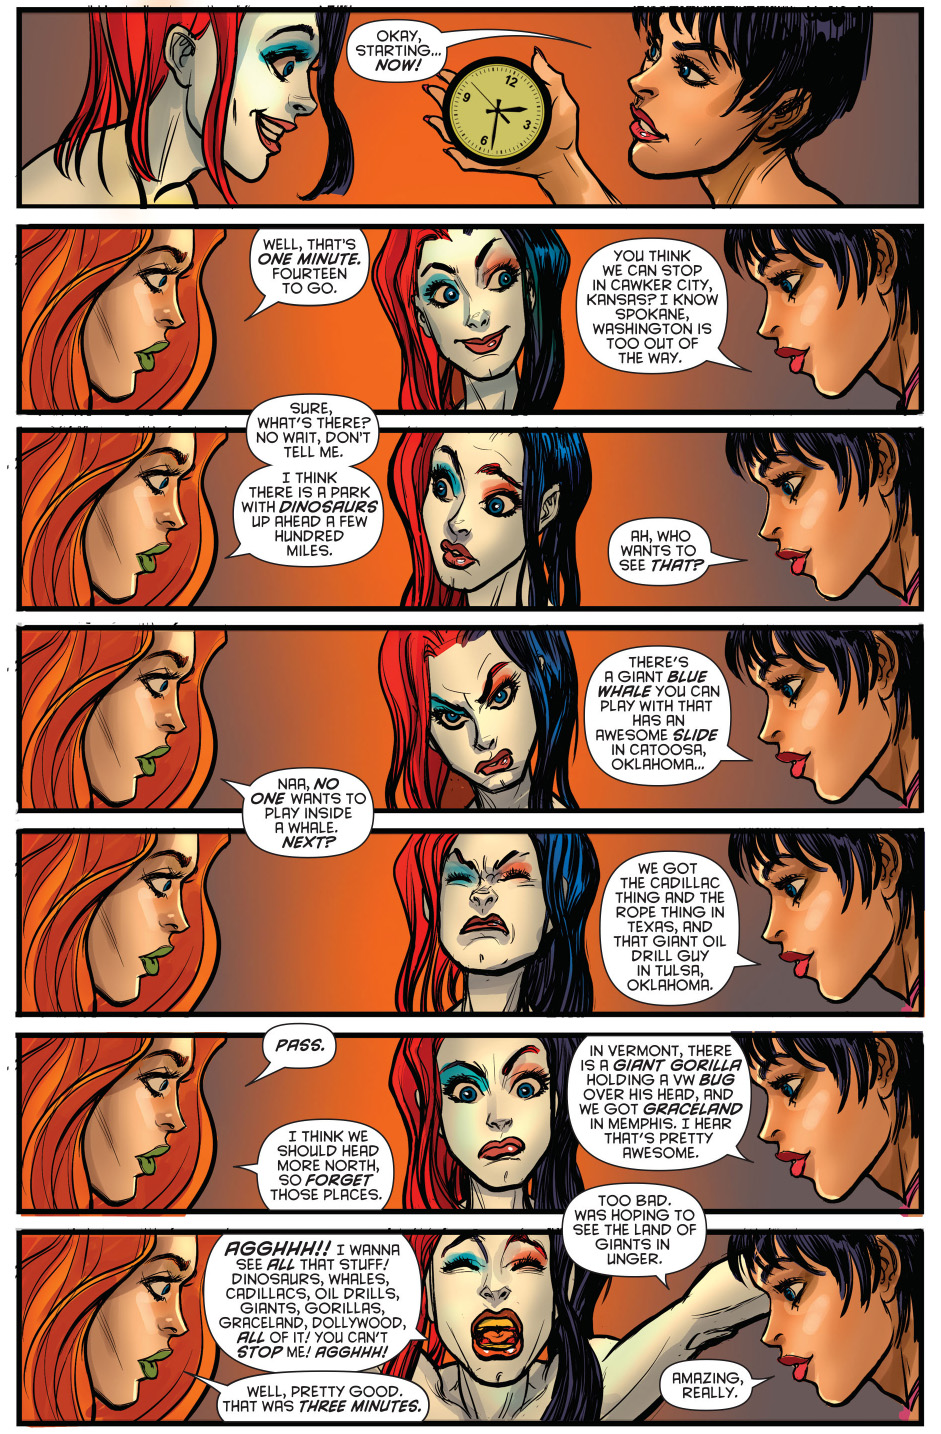 harley quinn, poison ivy and catwoman play truth or dare